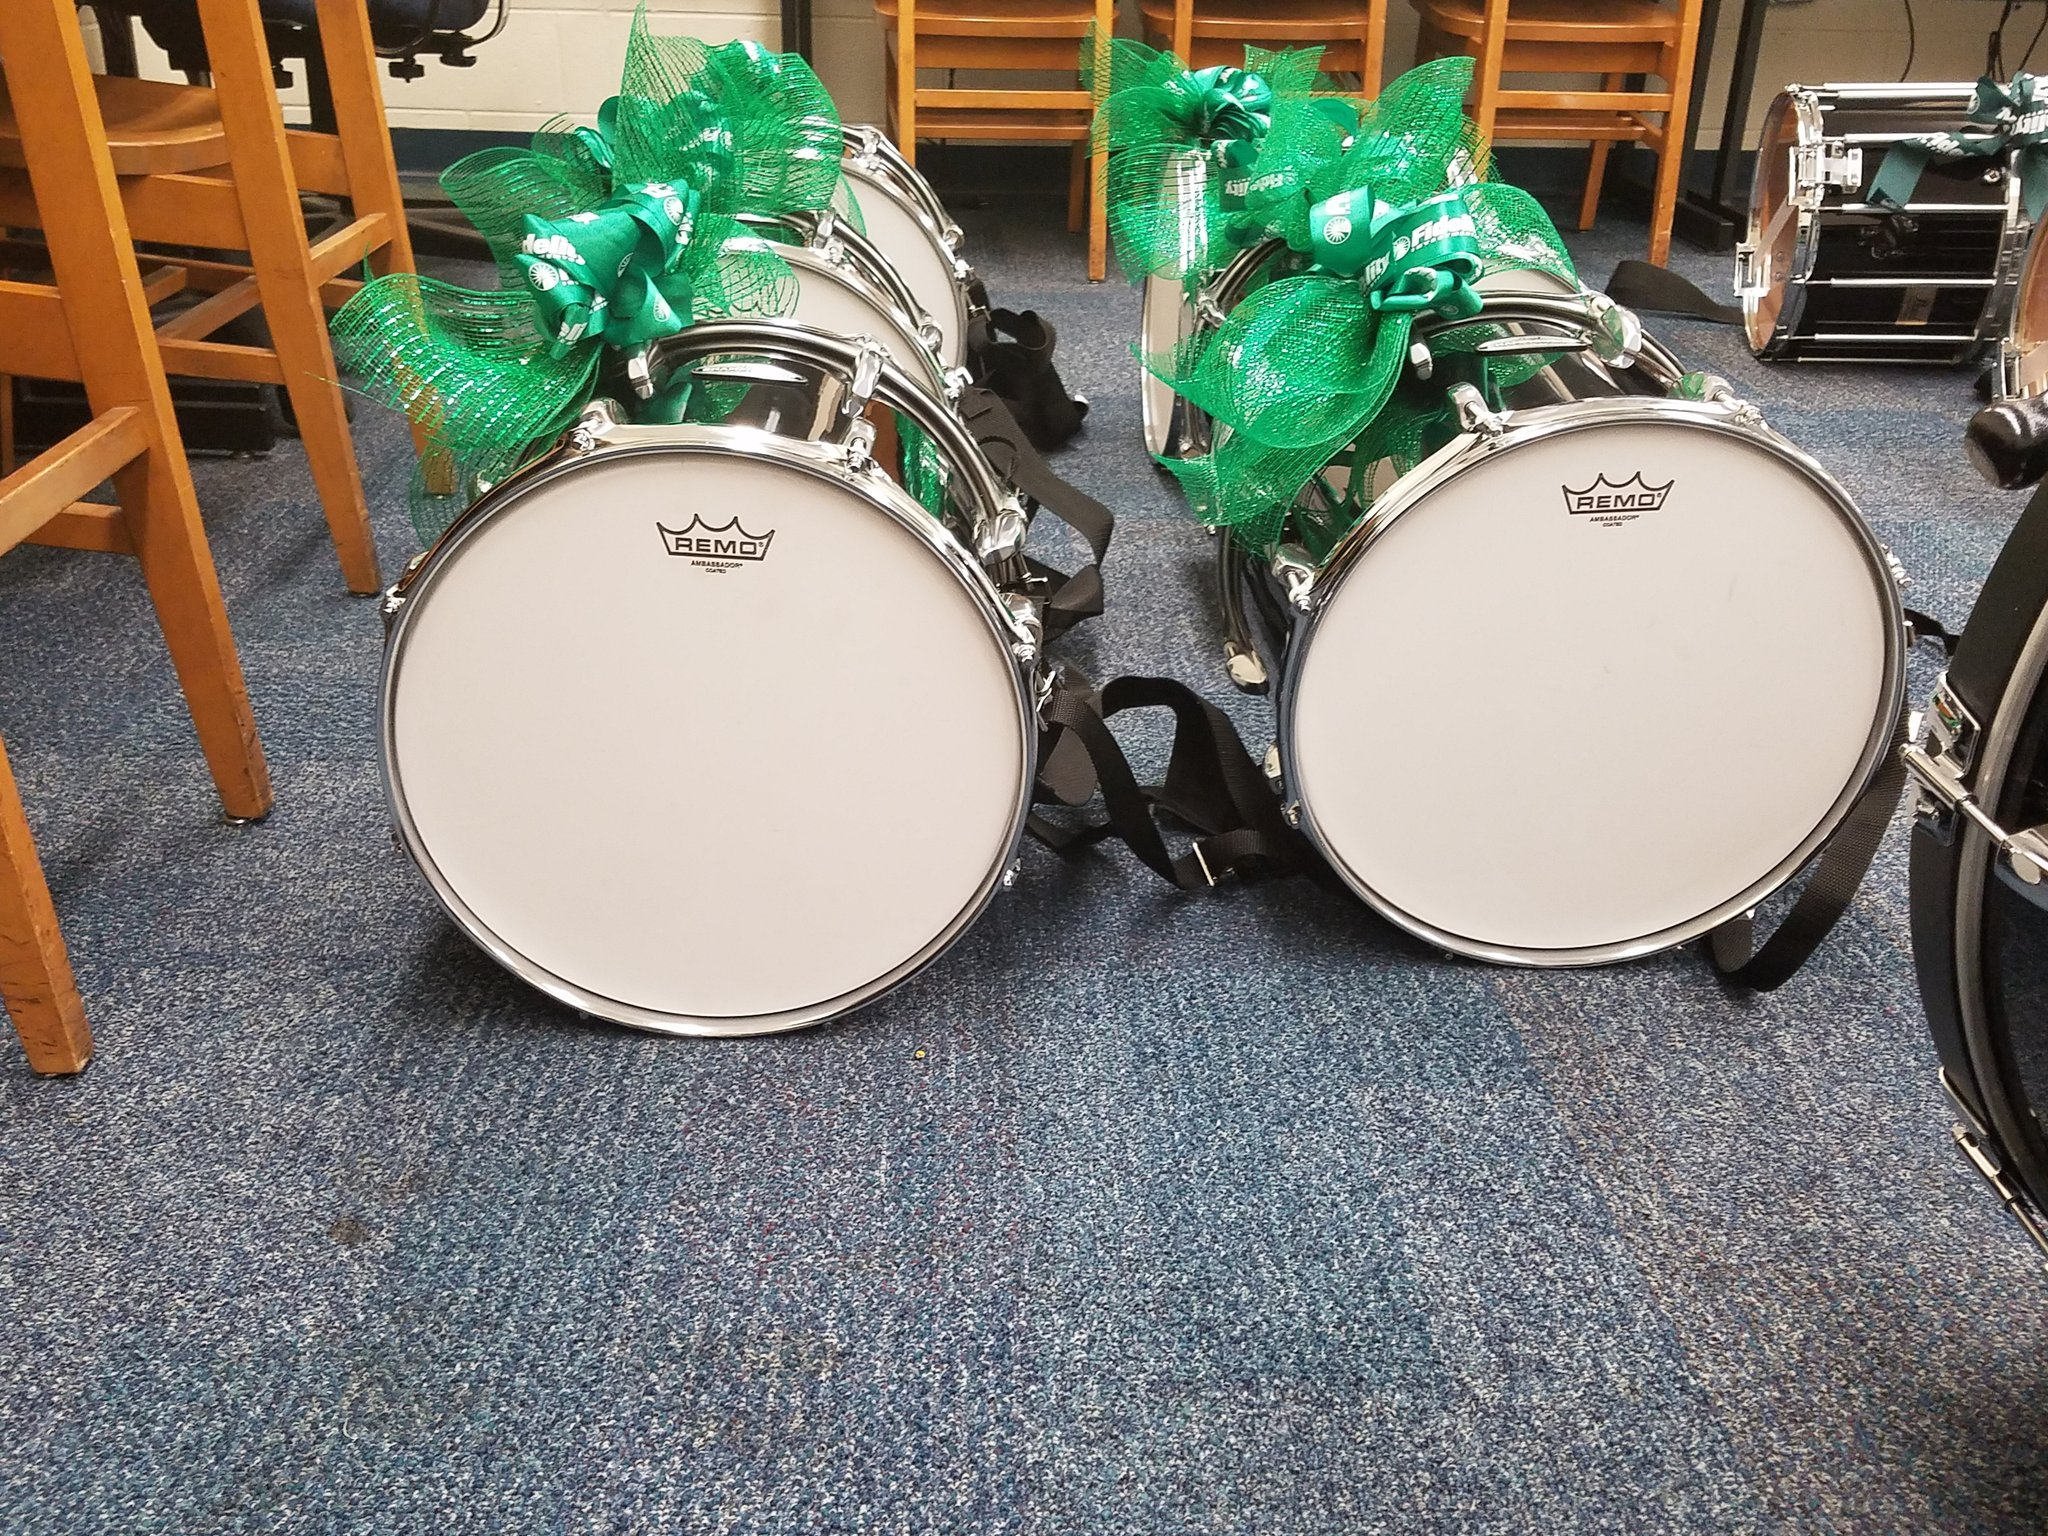 @Dunbar_HS band is about to get a huge surprise! New band equipment on the way!!! #FidelityCares2016 https://t.co/269zkuoeuo